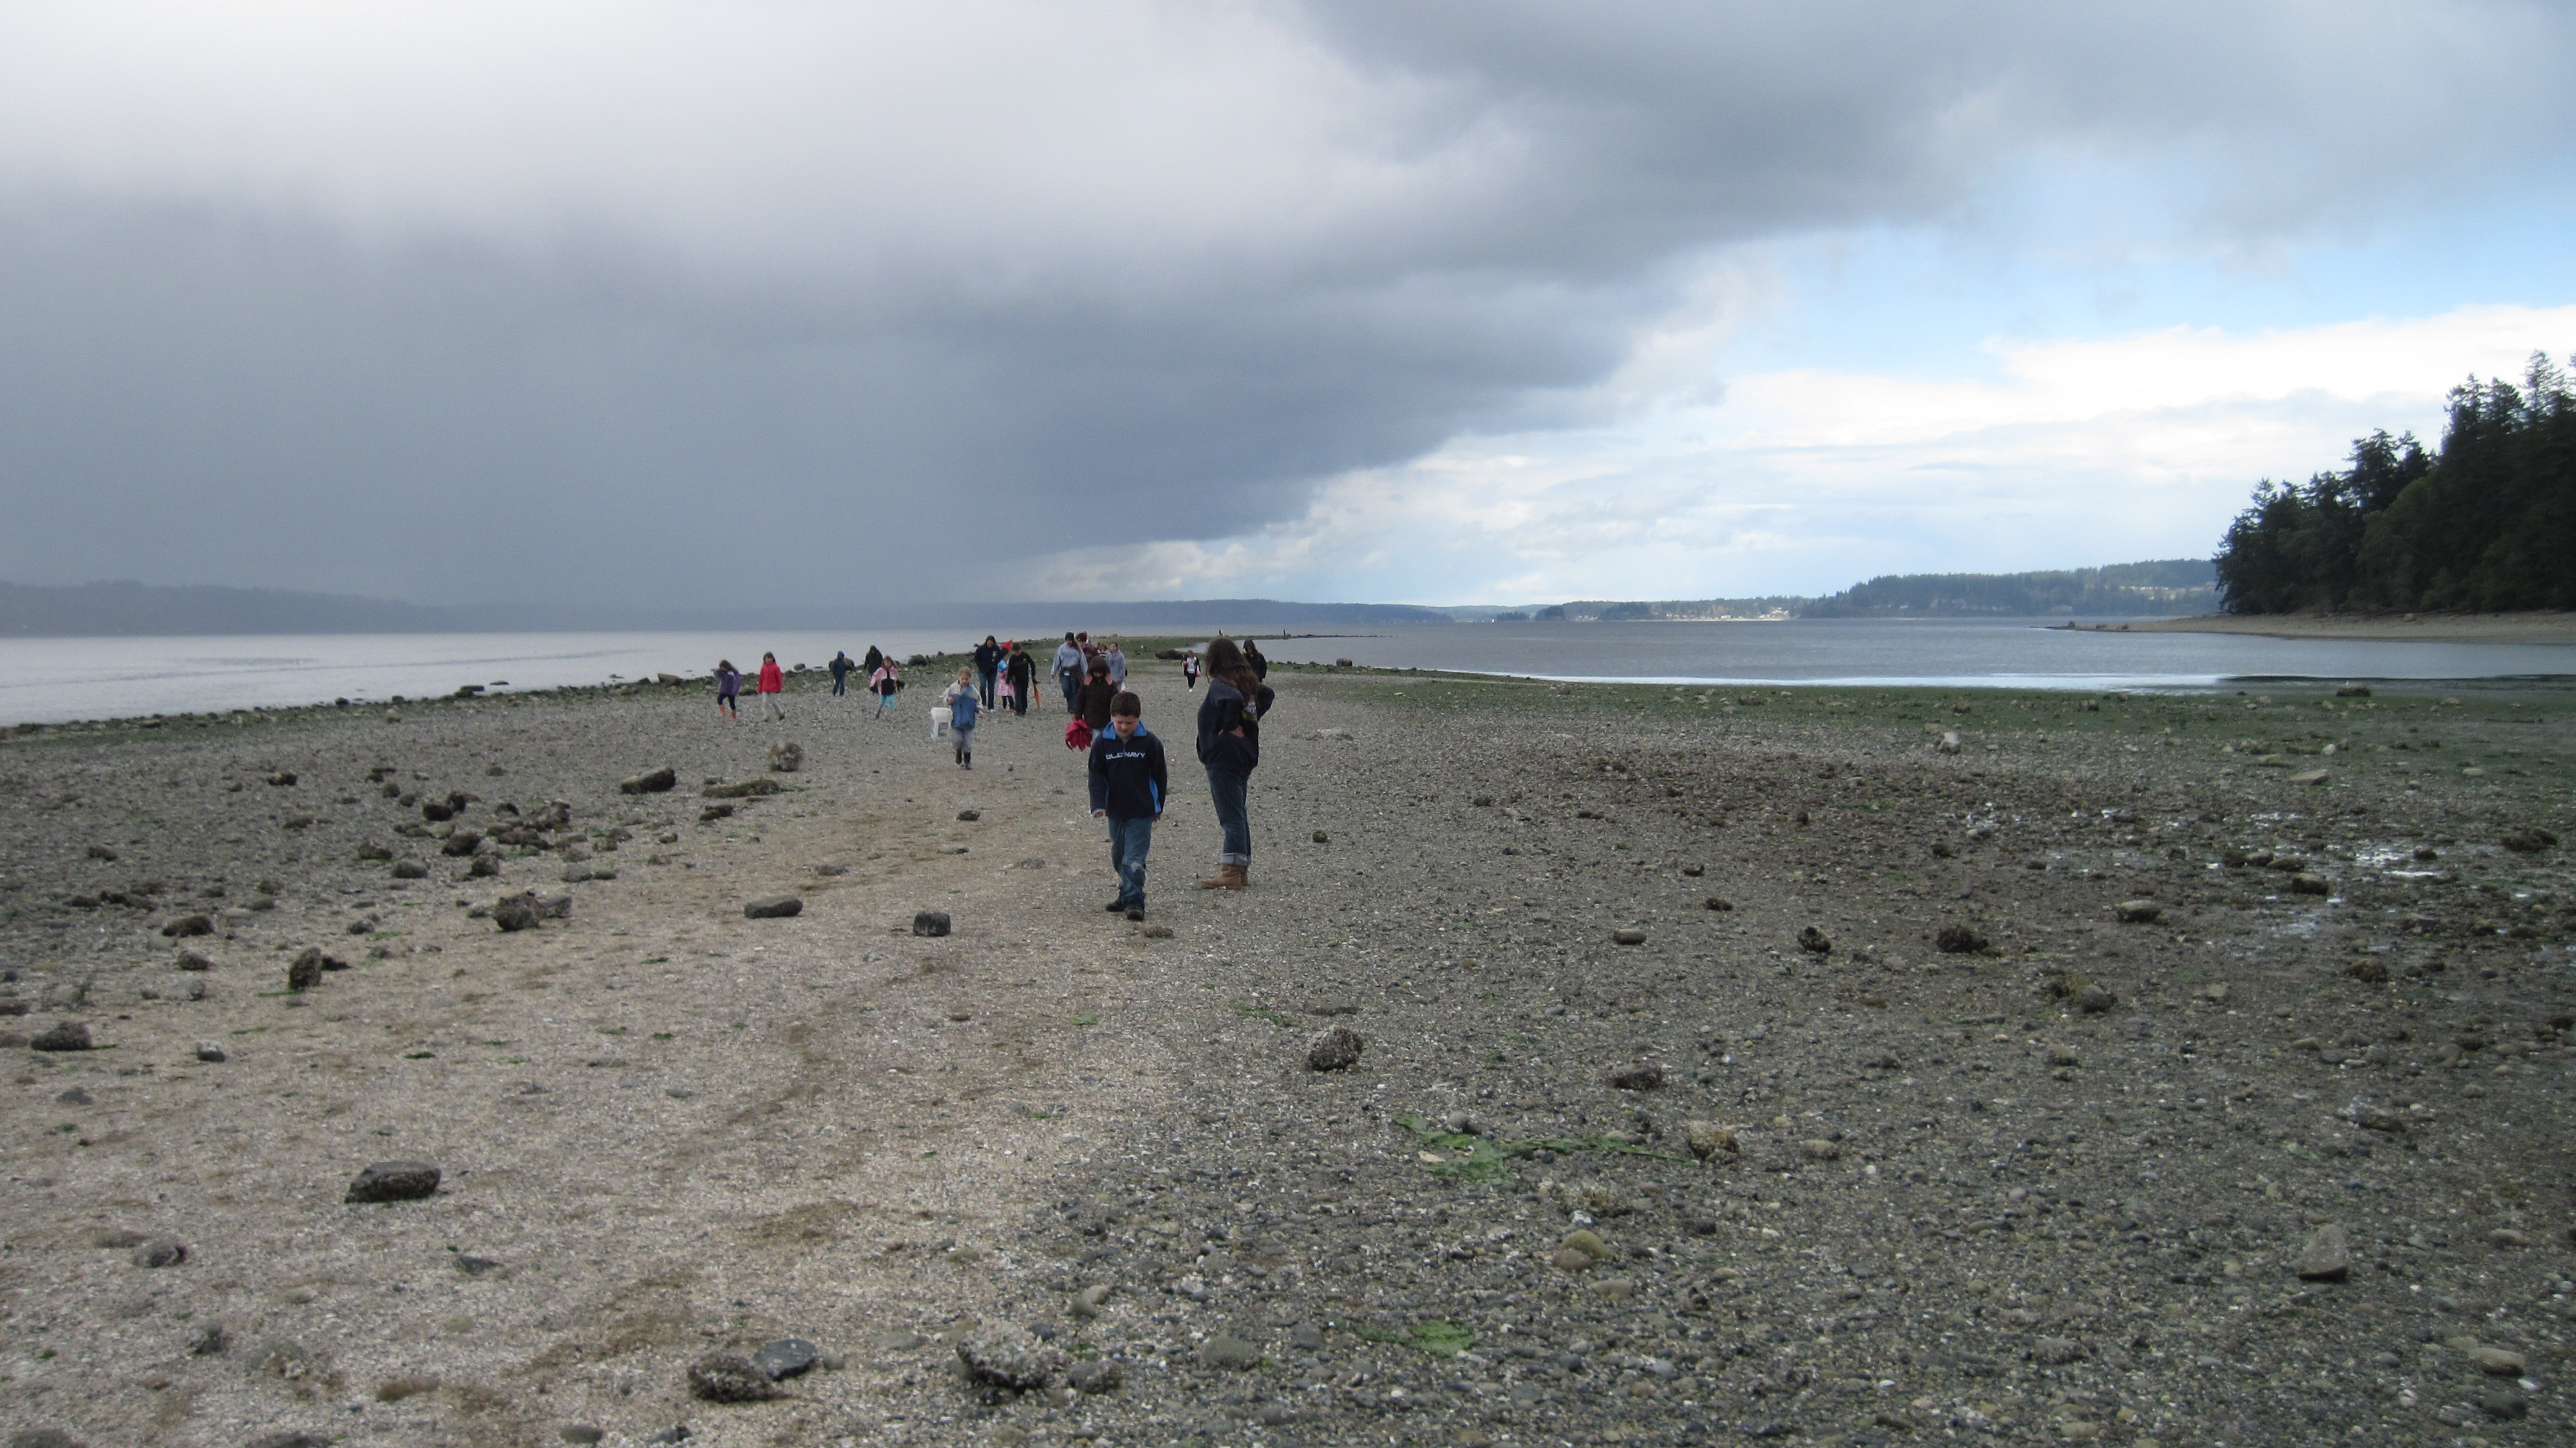 Penrose Point - people walking on beach